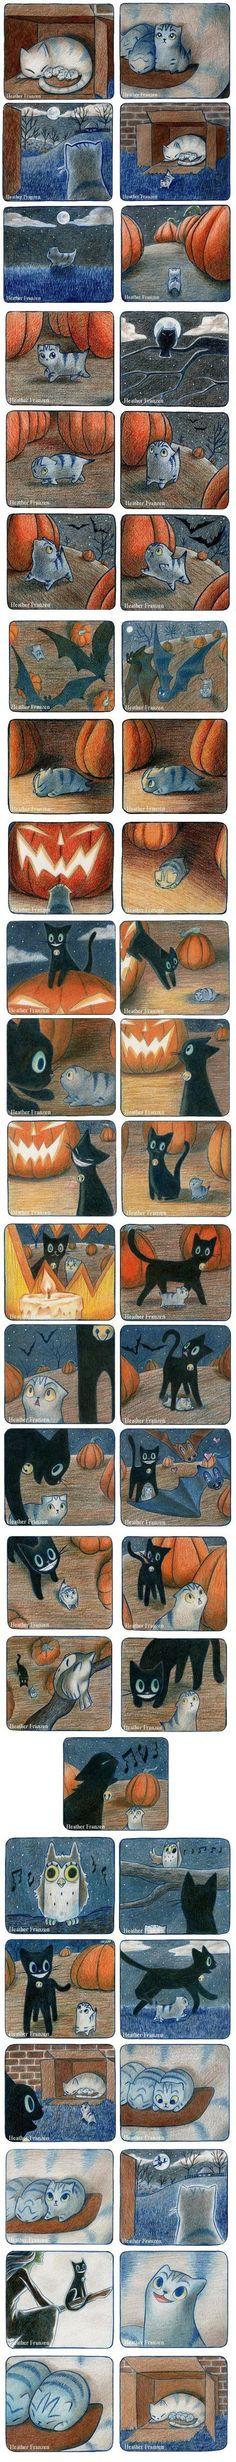 Petite histoire avec un chaton et un chat noir sur le thème d'Halloween. Small story with kitten and a black cat, on the theme of Halloween. so cute ! Animals And Pets, Funny Animals, Cute Animals, Crazy Cat Lady, Crazy Cats, The Meta Picture, Cute Stories, Short Stories, Cute Comics